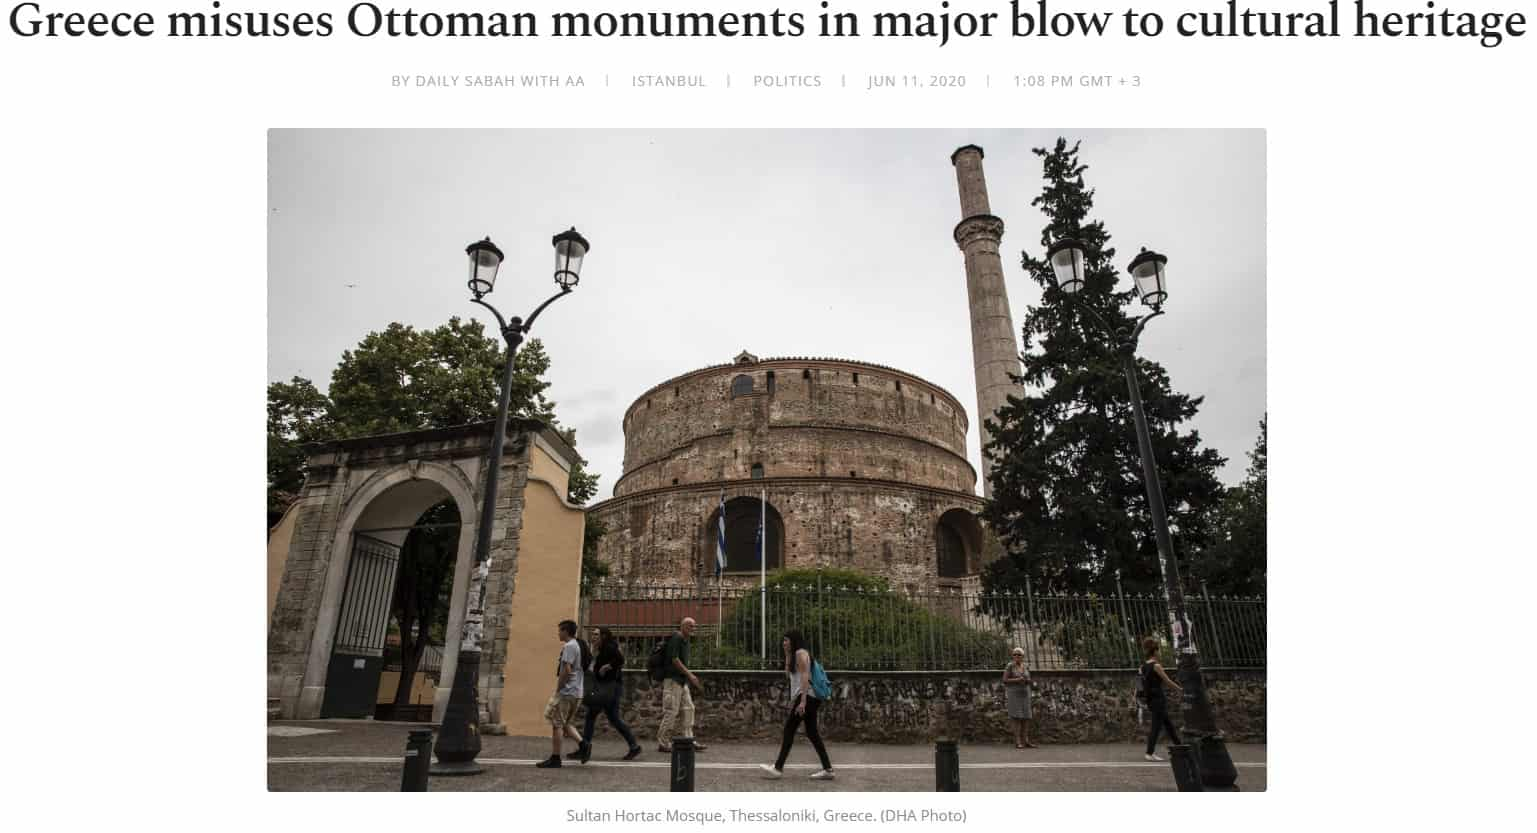 Turkish daily says ancient site in Thessaloniki built 300 years before Mohammed is a mosque 4